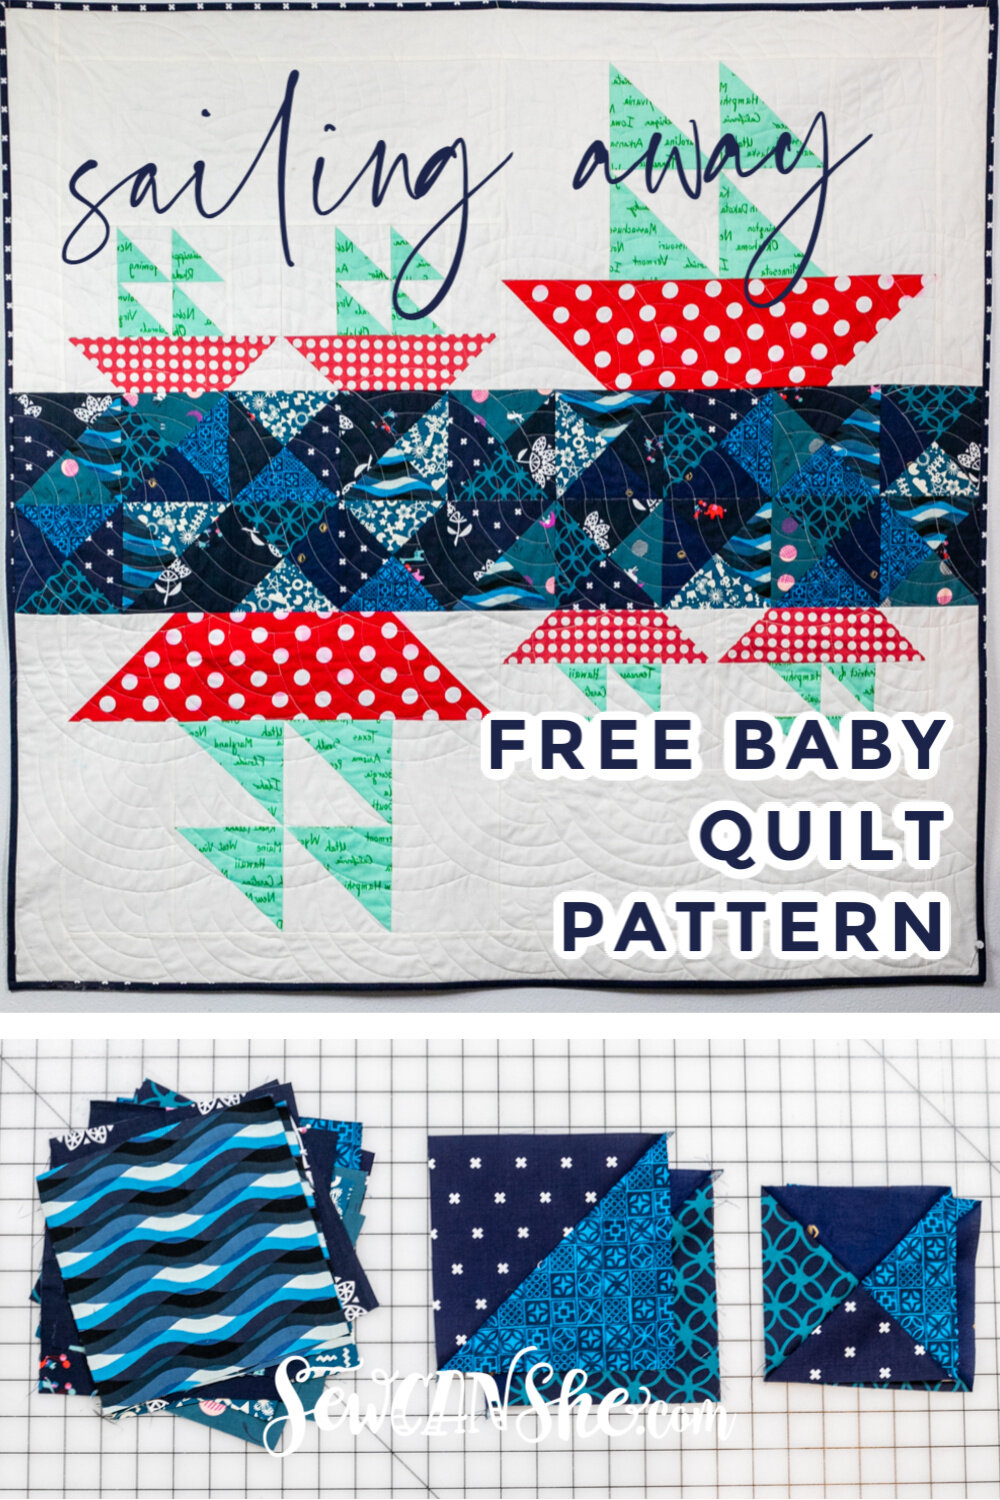 Sailing Away Free Baby Quilt Pattern With Sailboat Blocks Sewcanshe Free Sewing Patterns And Tutorials